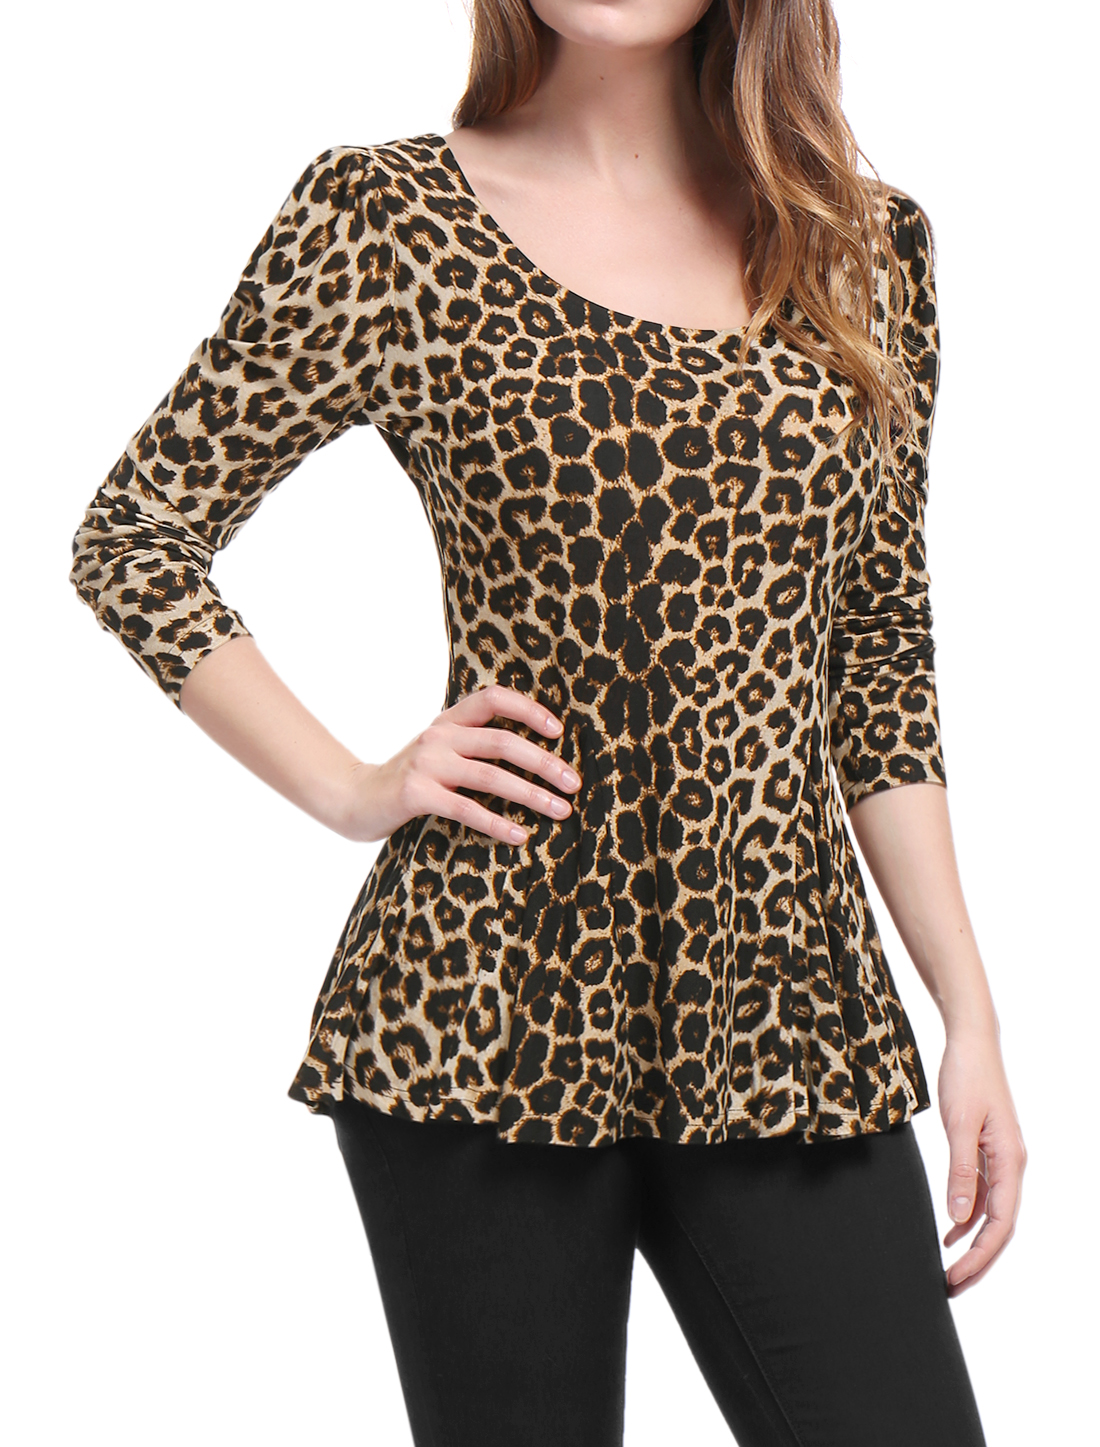 Ladies Leopard Prints Stretchy Autumn Peplum Shirt Beige Black /S